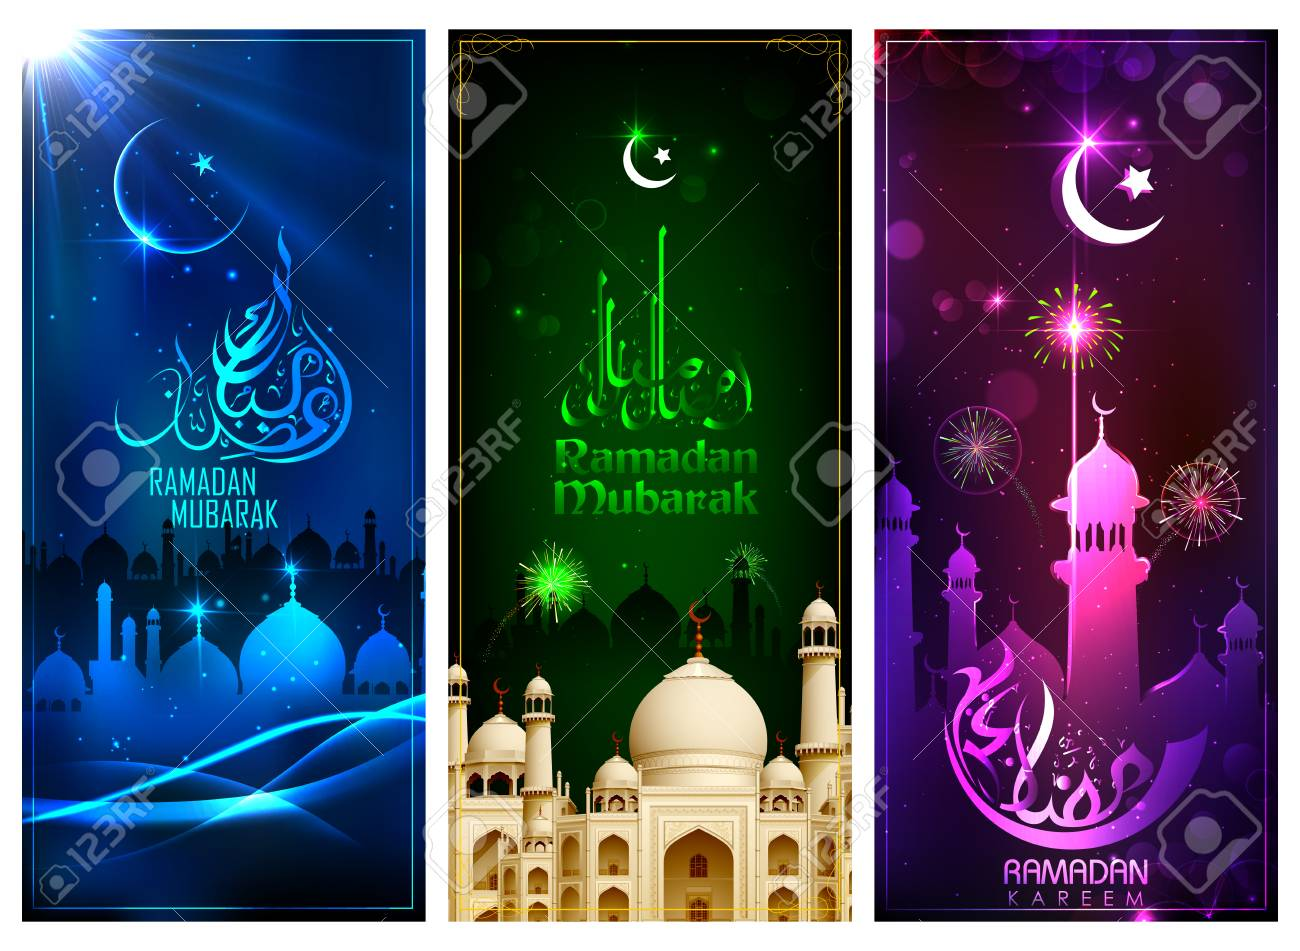 An illustration of banner template for Eid with message in Arabic